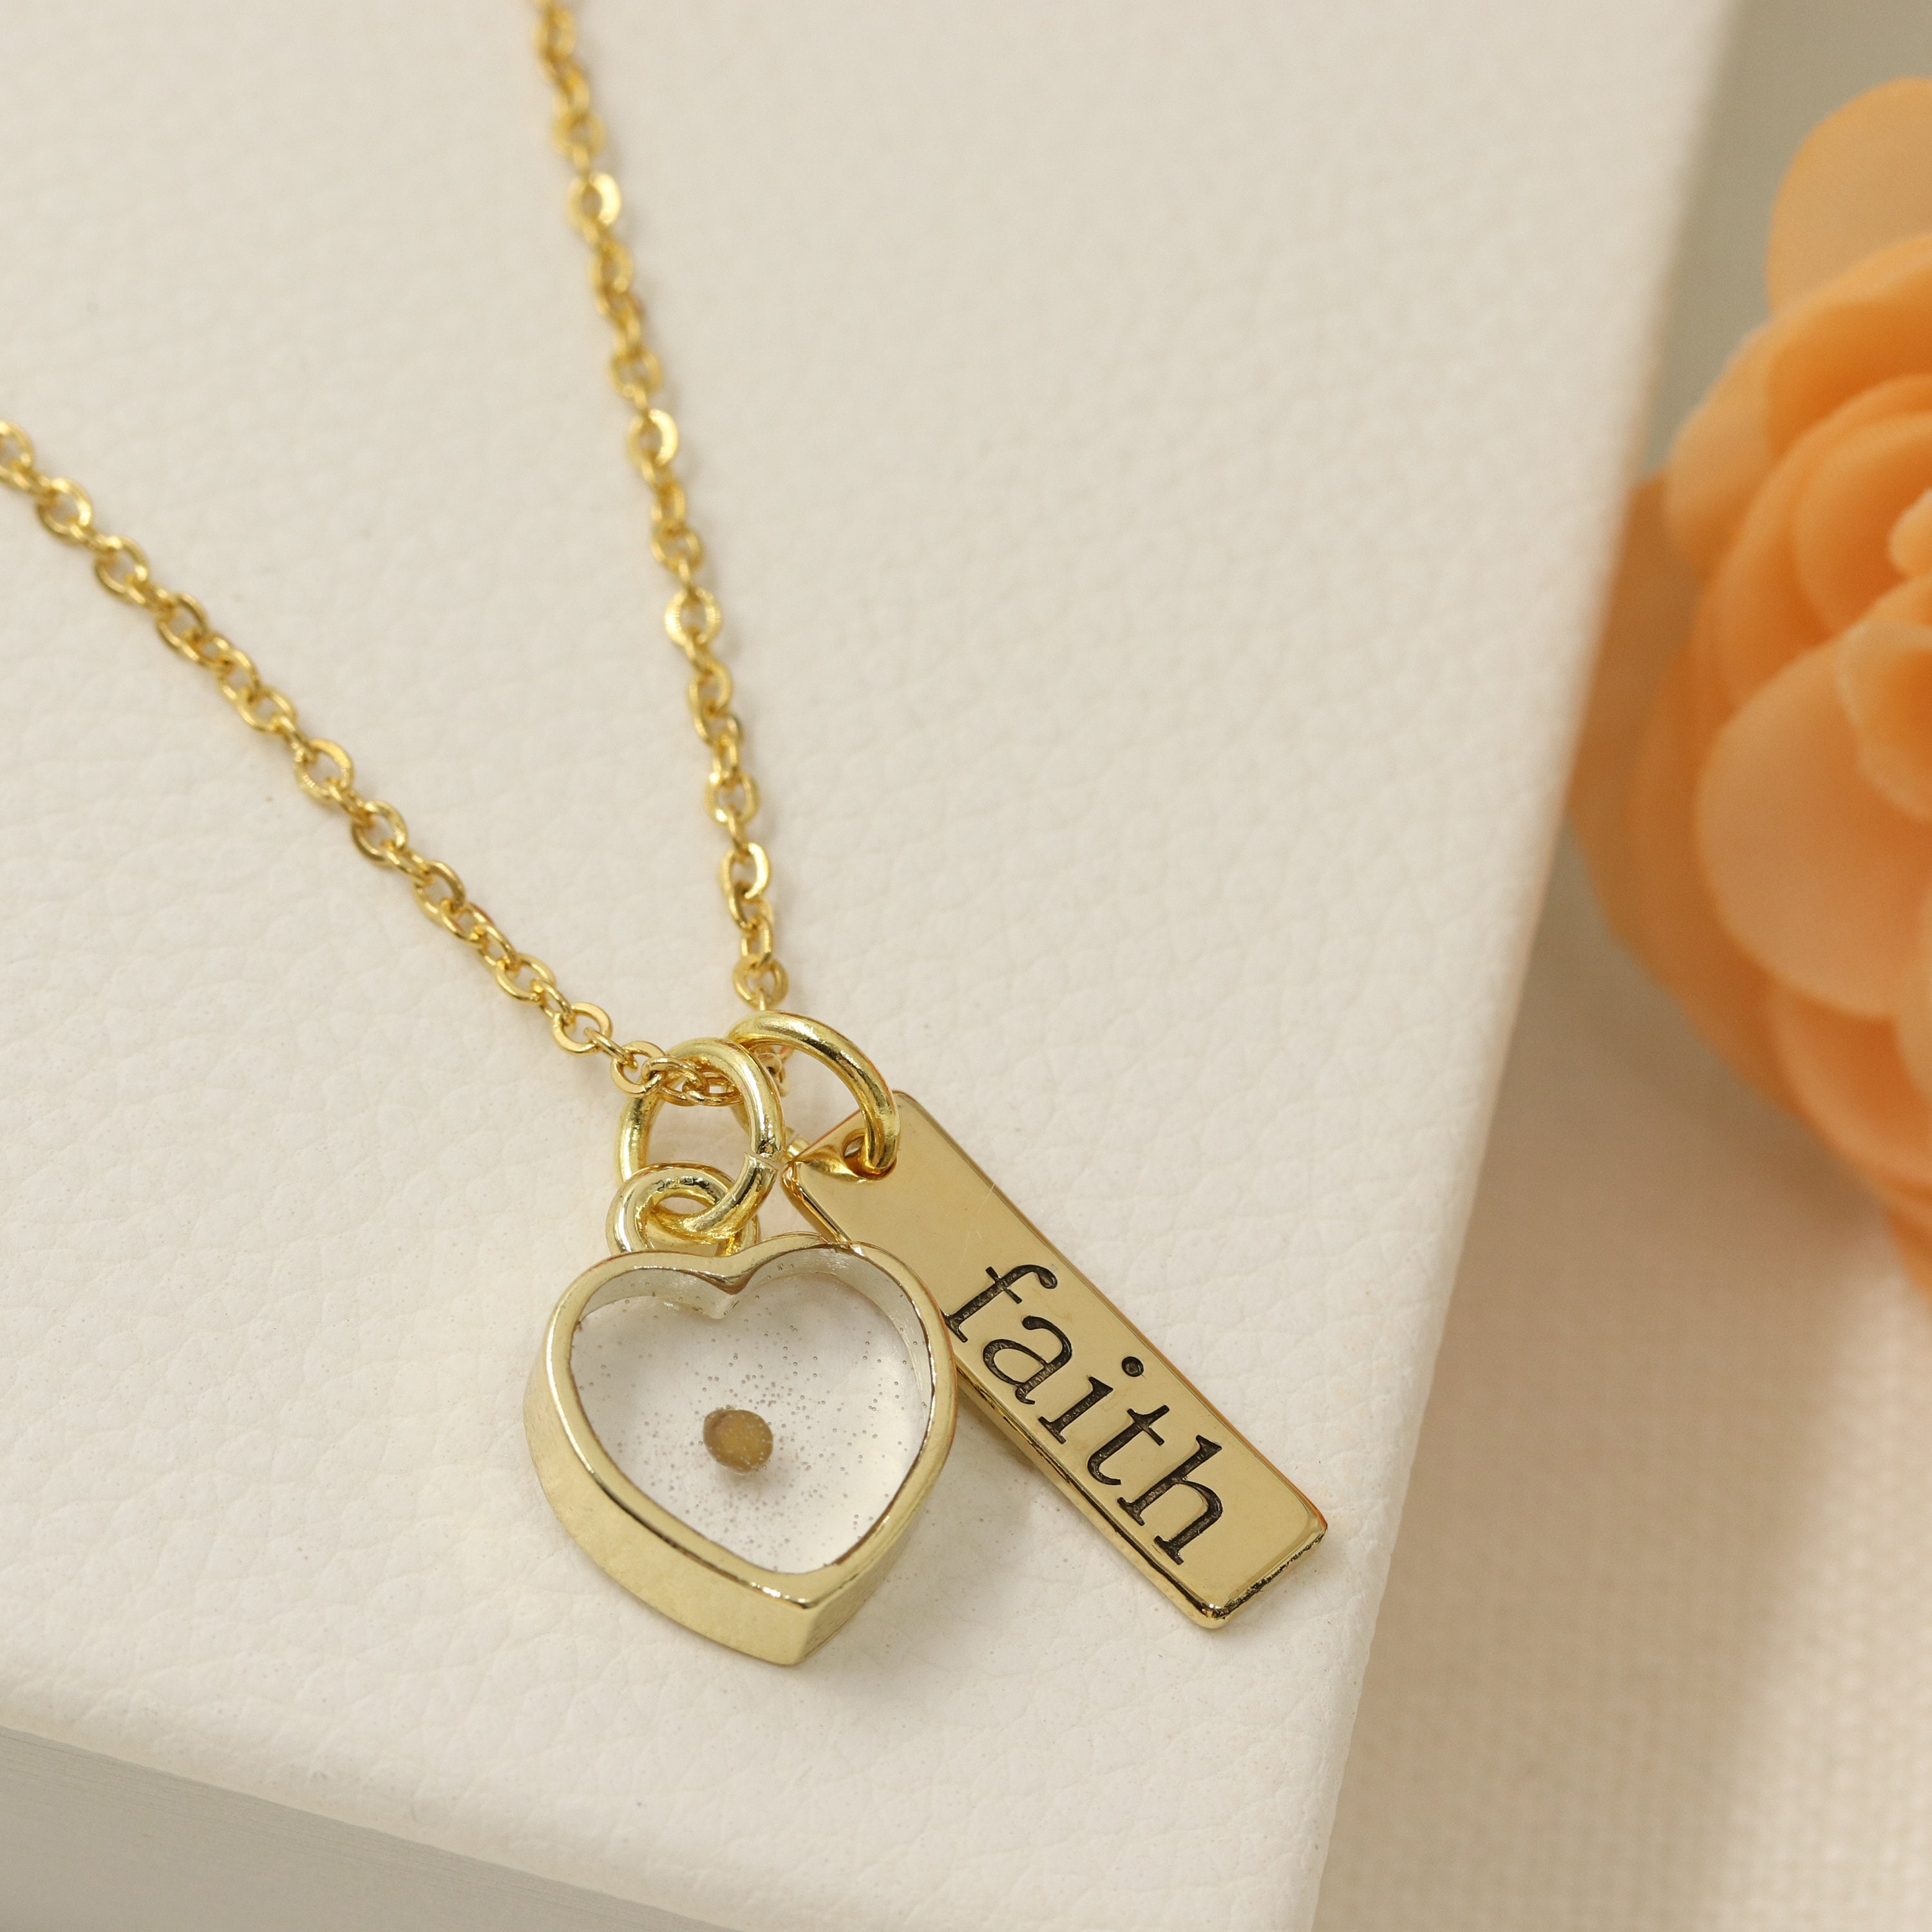 Mustard seed necklace faith necklace inspirational christian mustard seed necklace faith necklace inspirational christian gift faith as small as a mustard seed mustard seed jewelry aloadofball Image collections